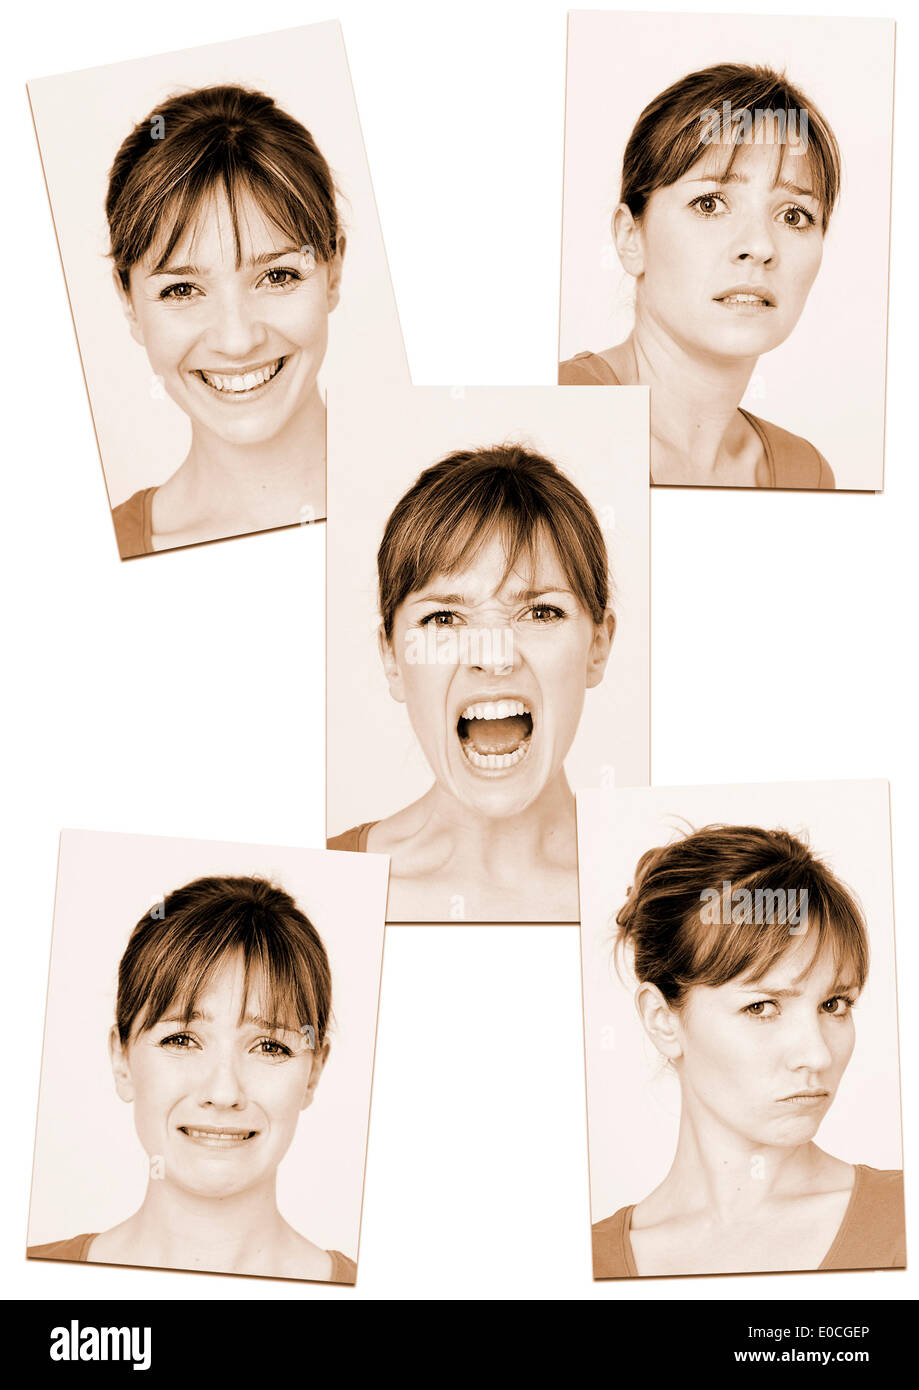 Personality disorder - Stock Image